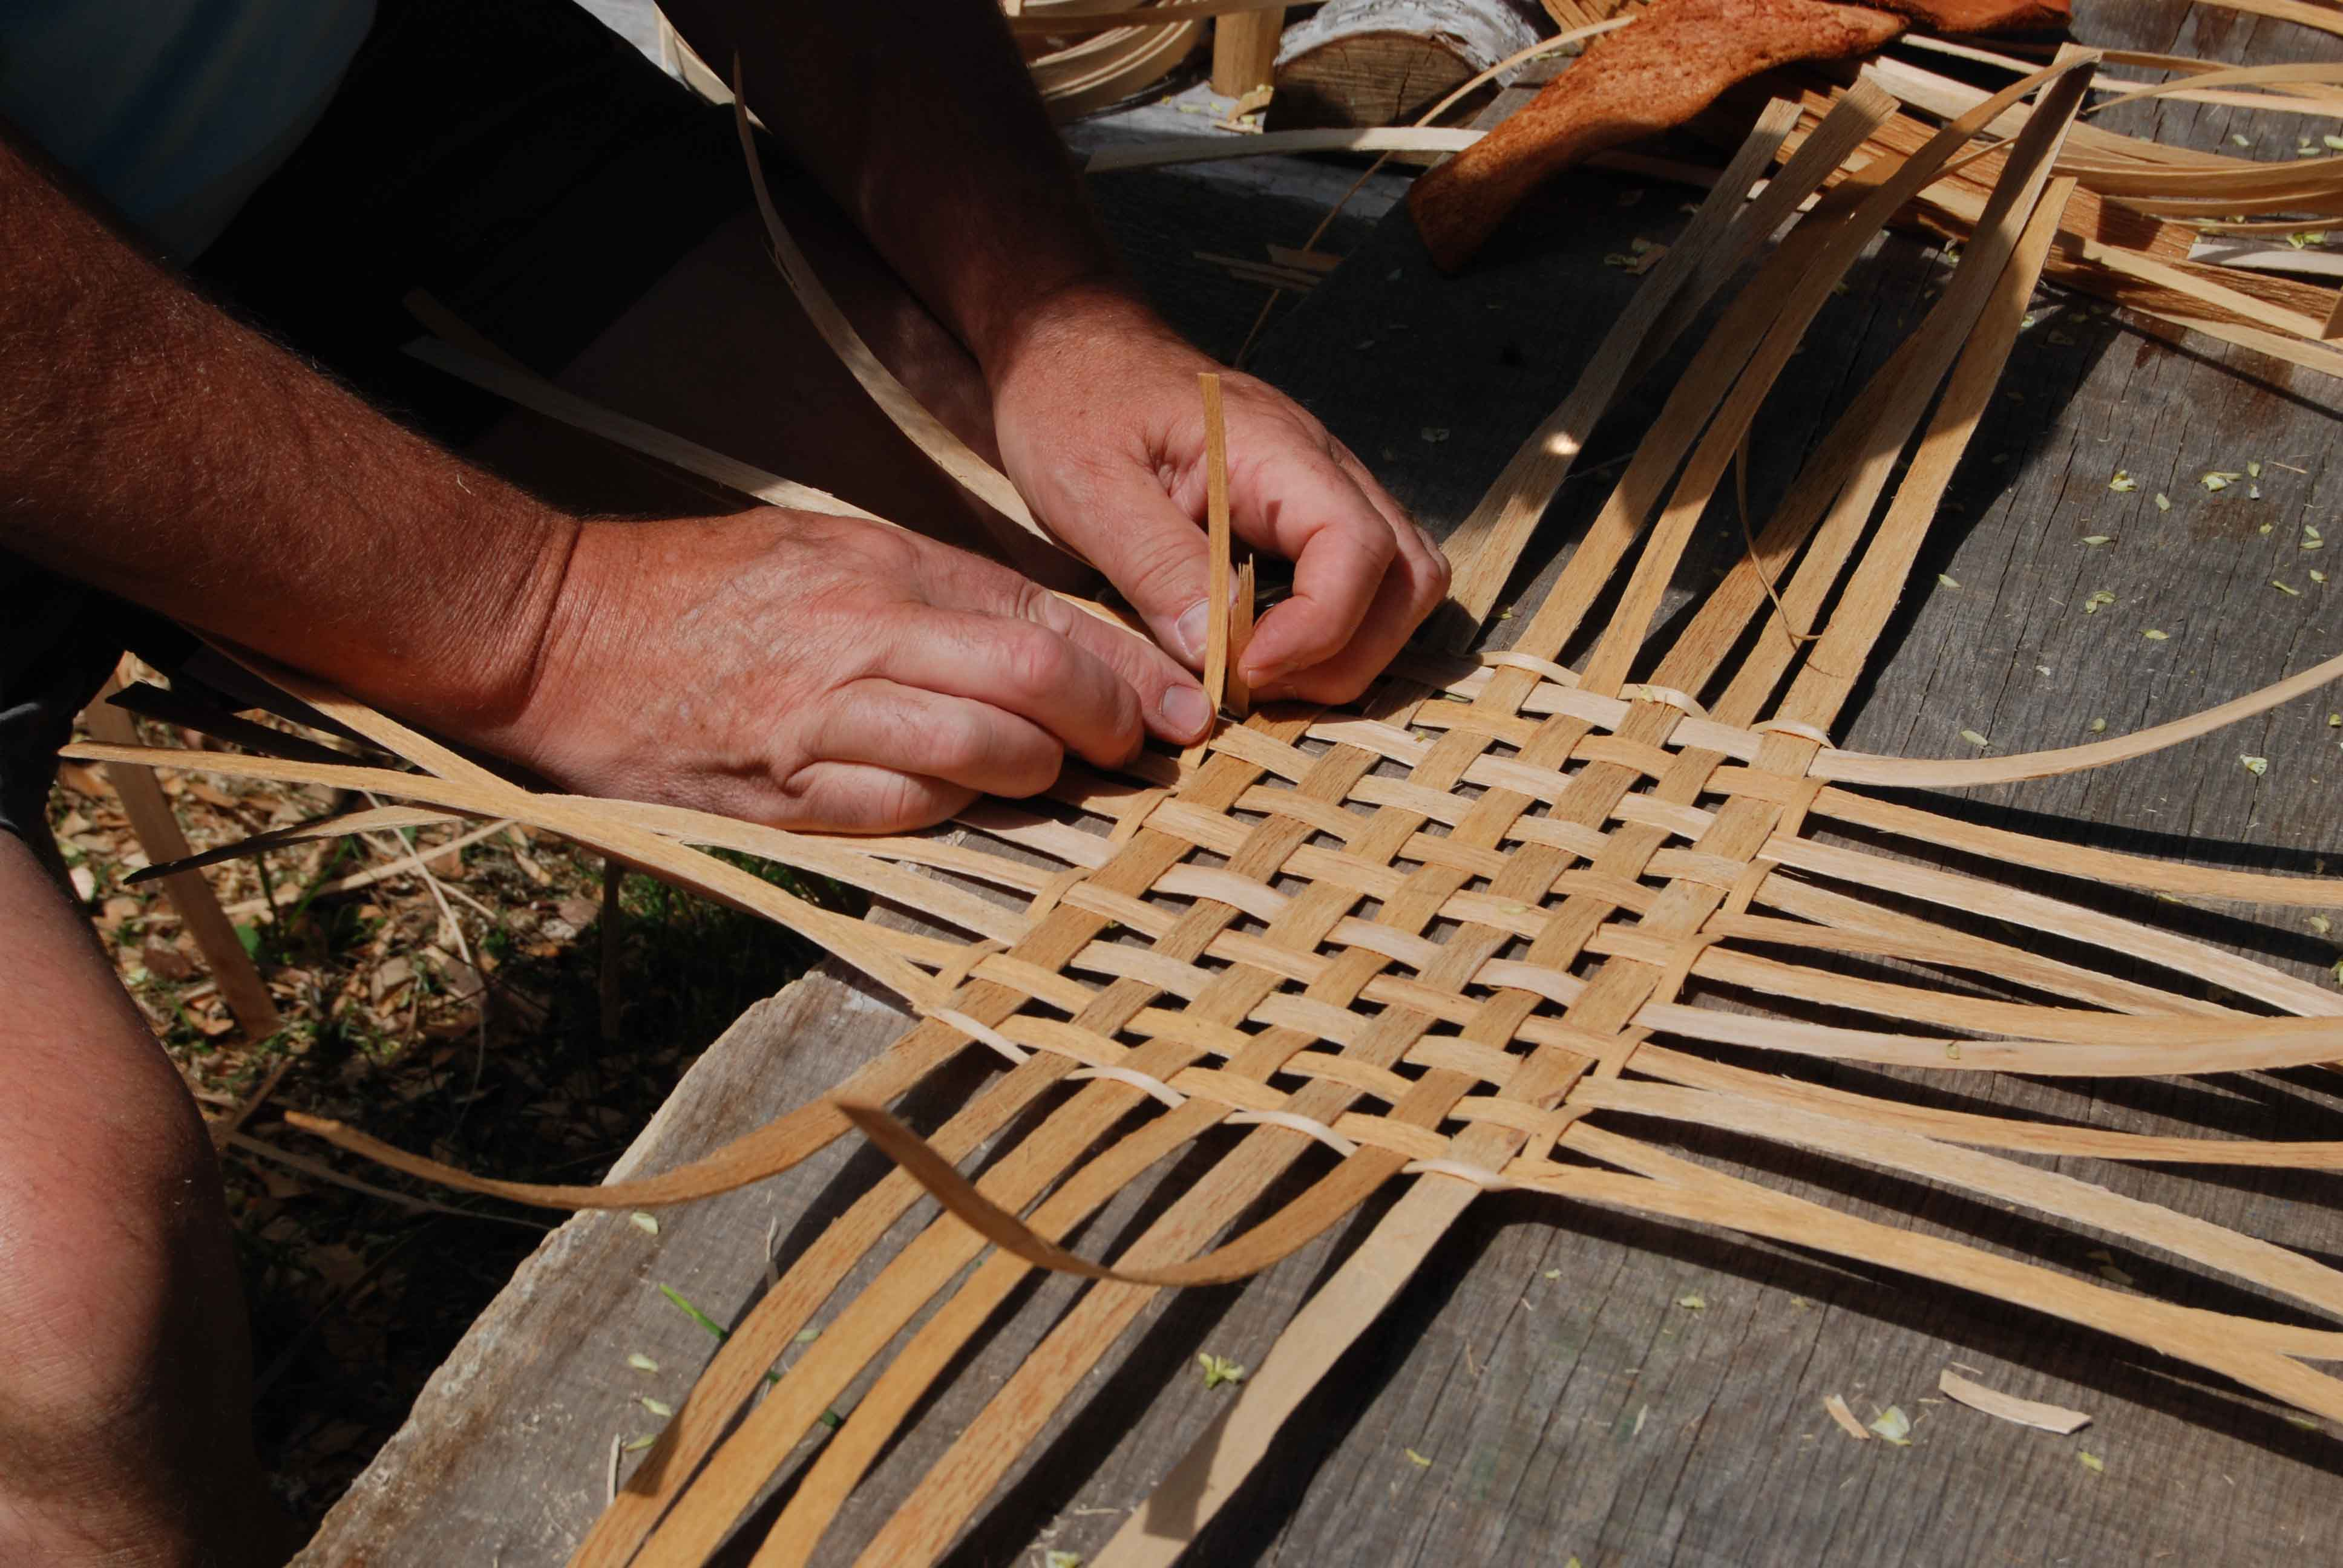 How To Weave A Hazel Basket : The stigma against feminist basket weaving